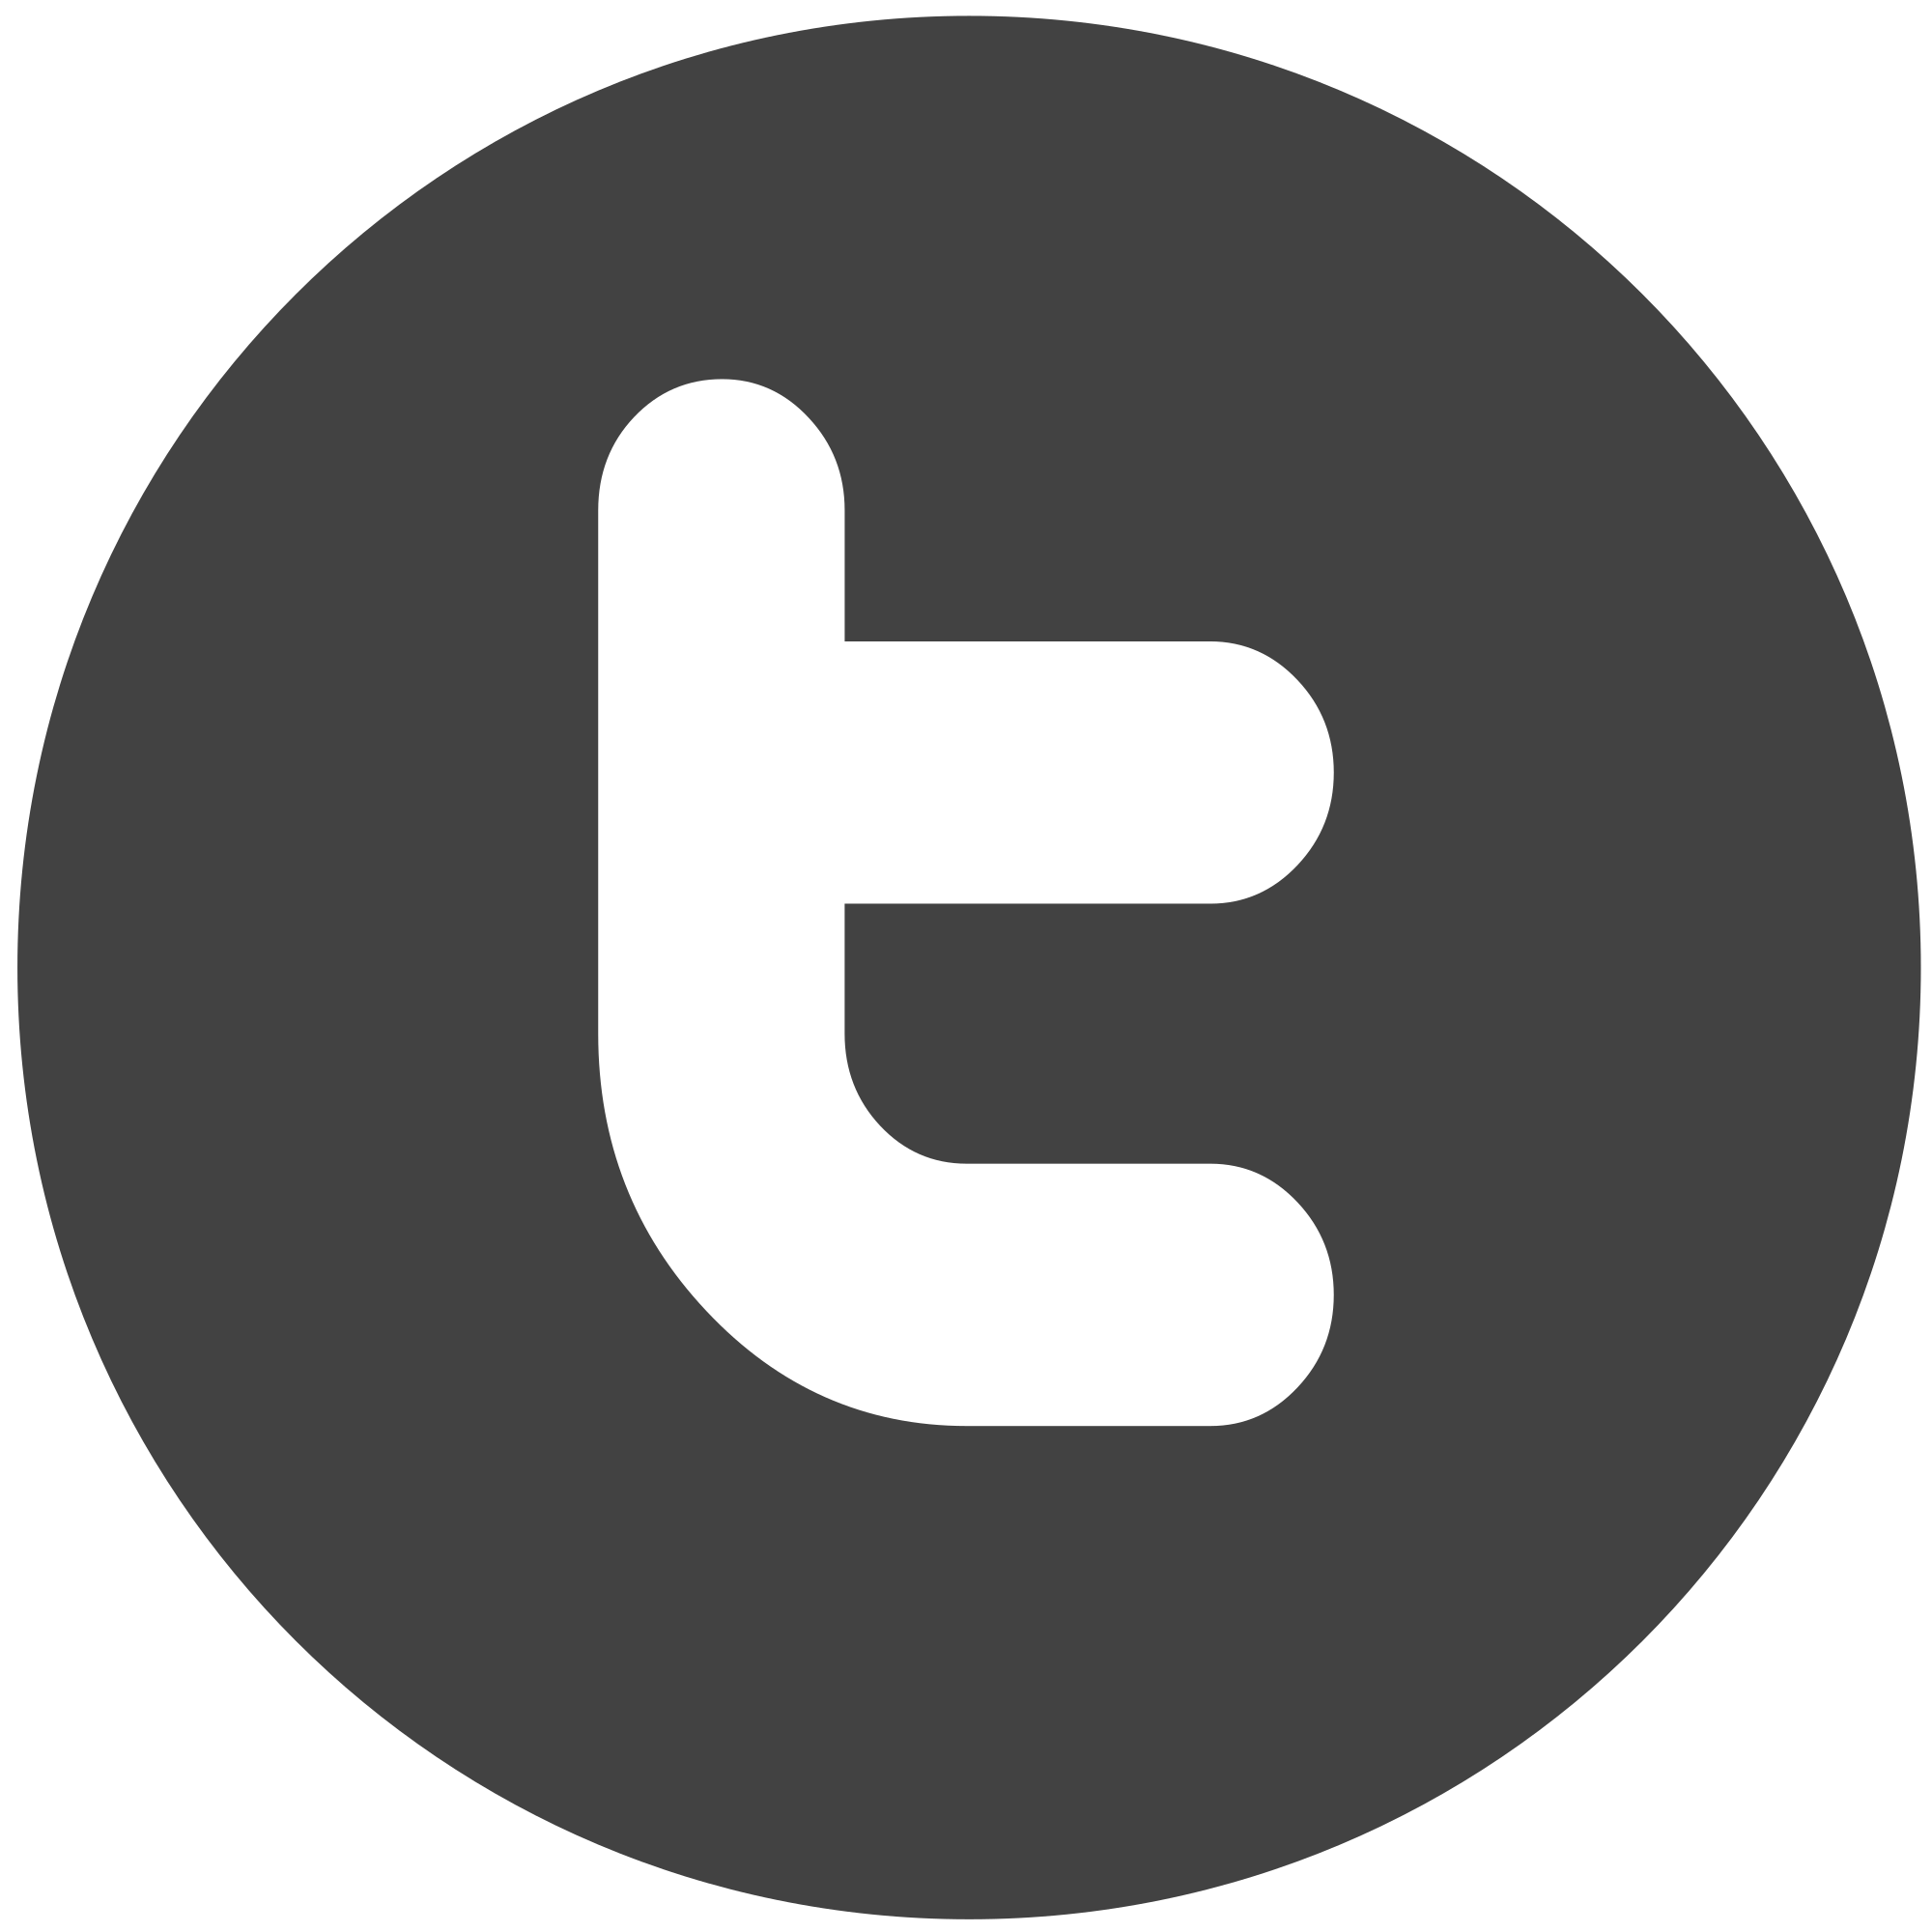 Twitter logo clipart png svg free library File:Icon Twitter.svg - Wikimedia Commons svg free library